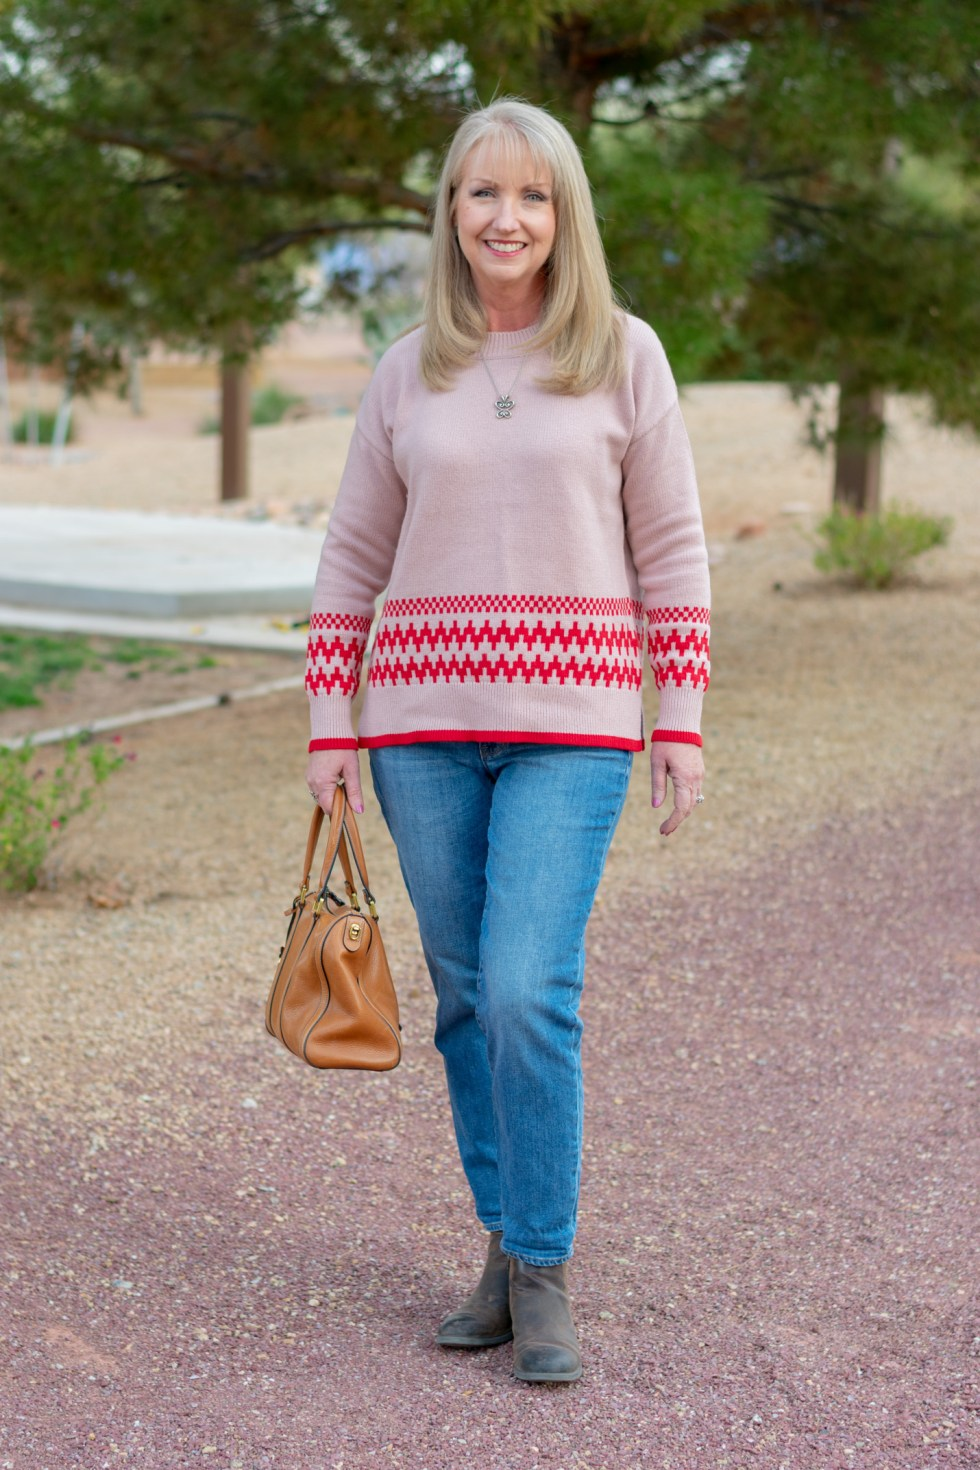 bb3f16c7c62 Warm Fair Isle Sweater from Boden - Dressed for My Day